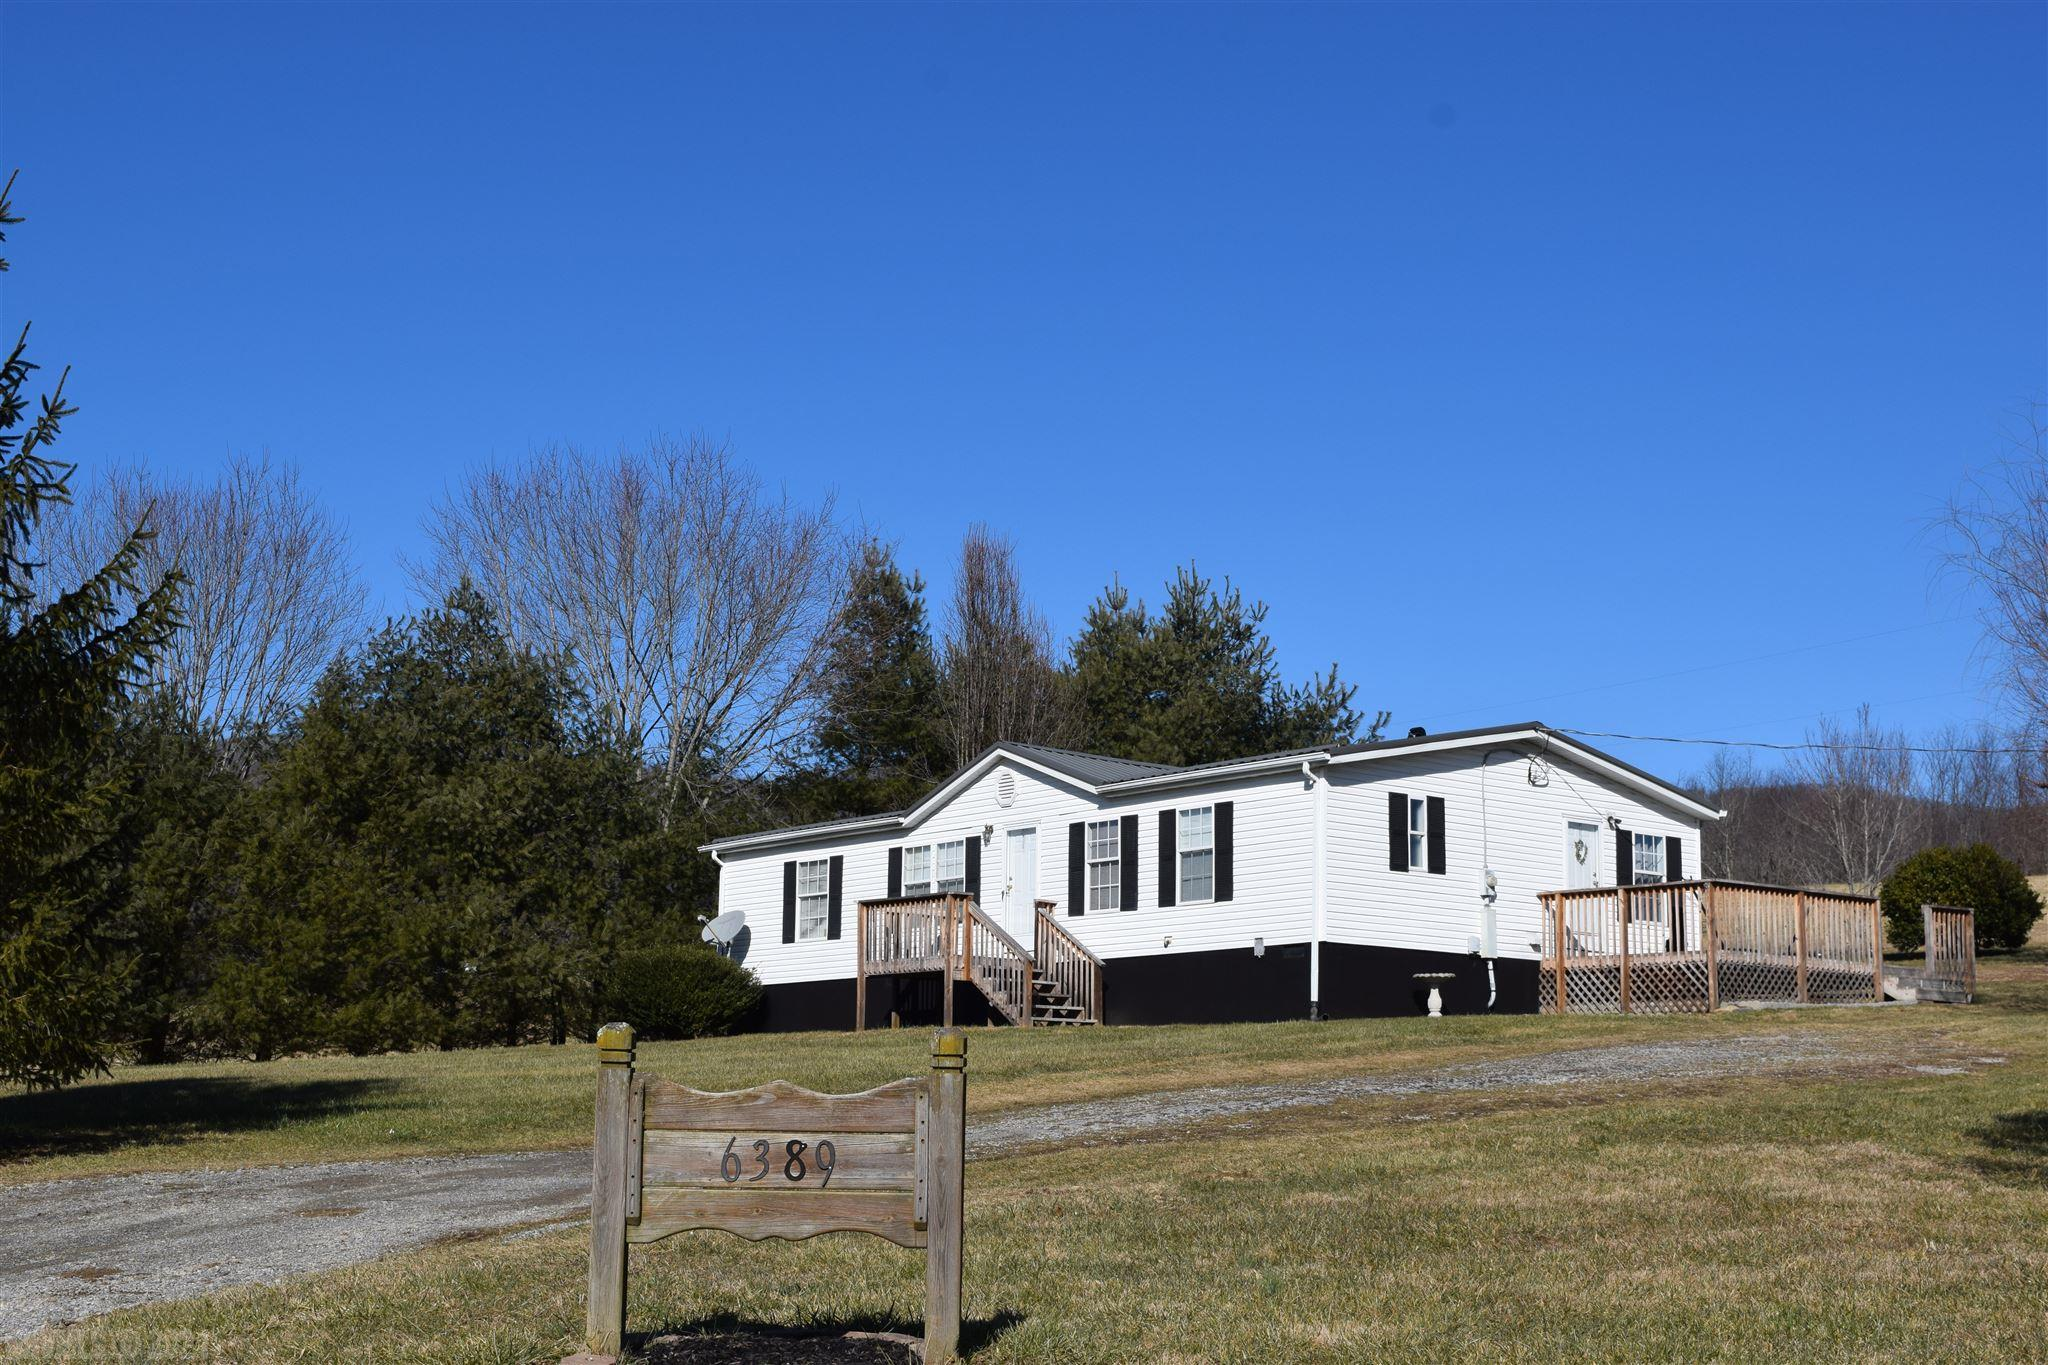 Beautifully maintained 3 BDR / 2 BTH home on permanent foundation with 1 acre. A new well and heat pump from 2016, a new metal roof and decking from 2017.   A great starter home or investment property potential!  A shed with room for tools and mower. The pastoral beauty of the site, the views of Walker Mt. and the fields brings peace to your heart.  This home is conveniently located to the Town of Dublin, New River Community College, Volvo, shopping and Interstate 81.   Call today to set your appointment to view this home!